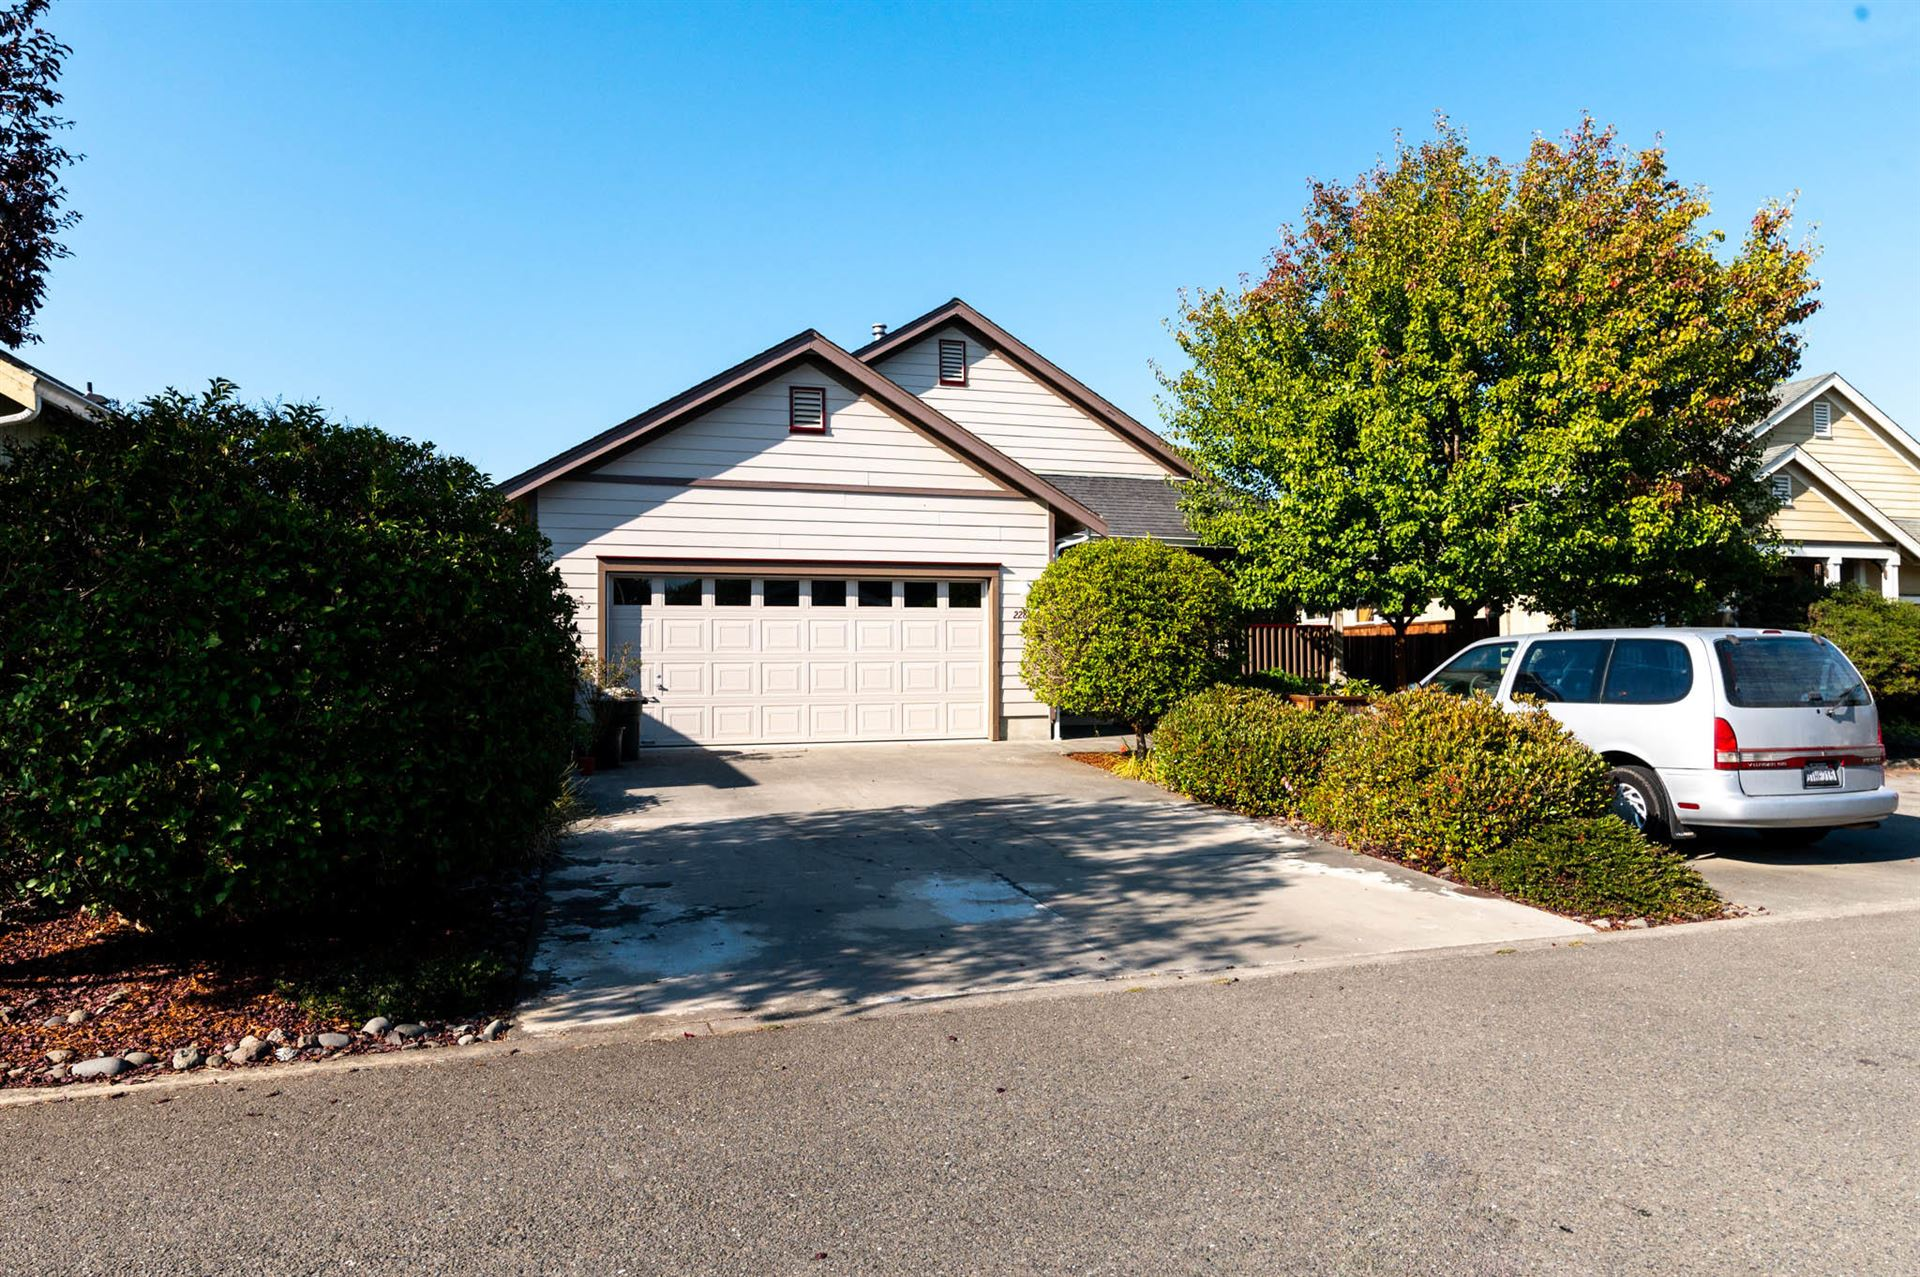 2280 Ariel Way, Arcata, CA 95521 - MLS#: 257391